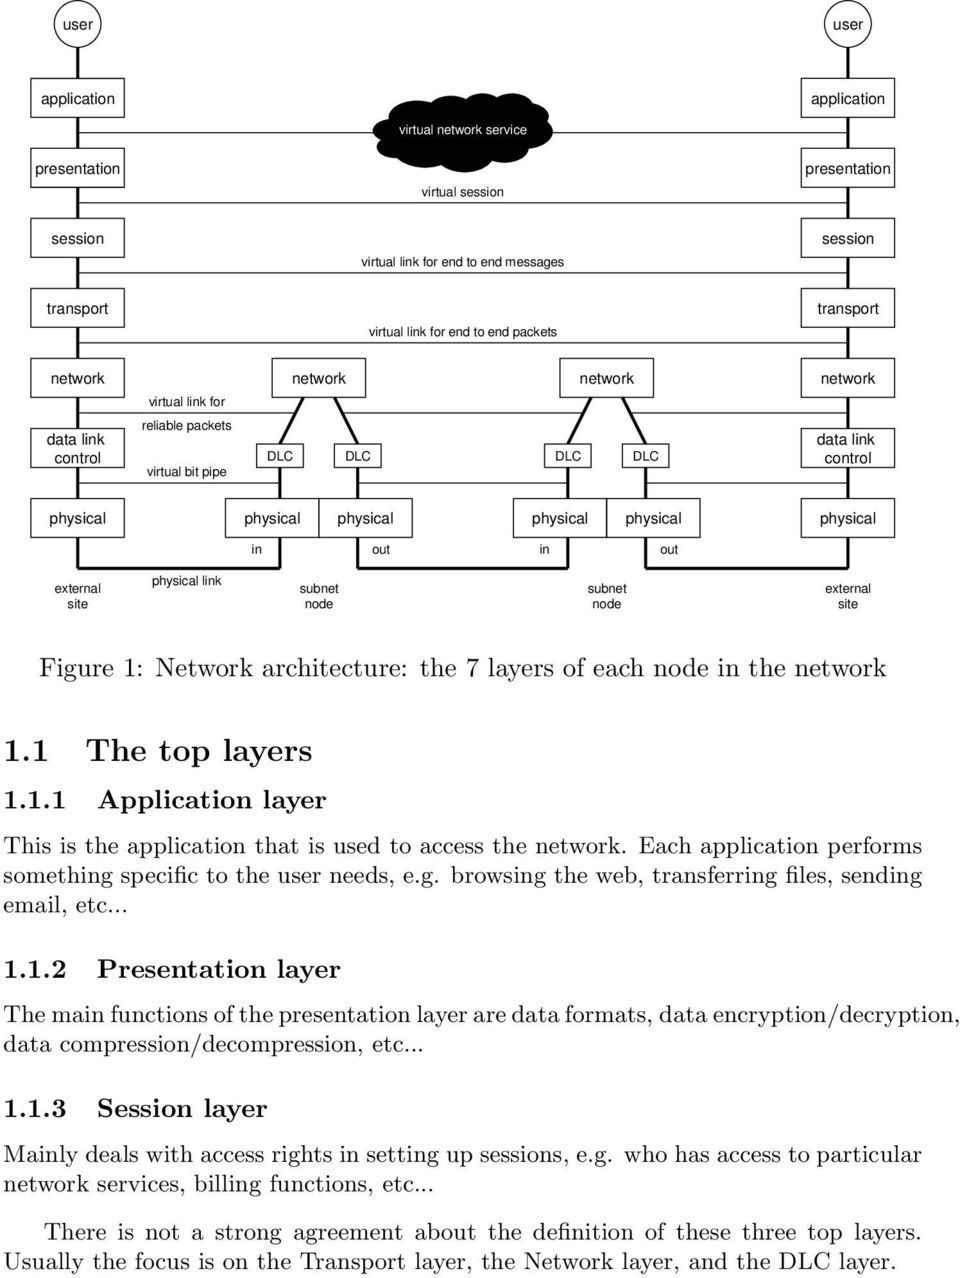 site physical link subnet node subnet node external site Figure 1: Network architecture: the 7 layers of each node in the network 1.1 The top layers 1.1.1 Application layer This is the application that is used to access the network.